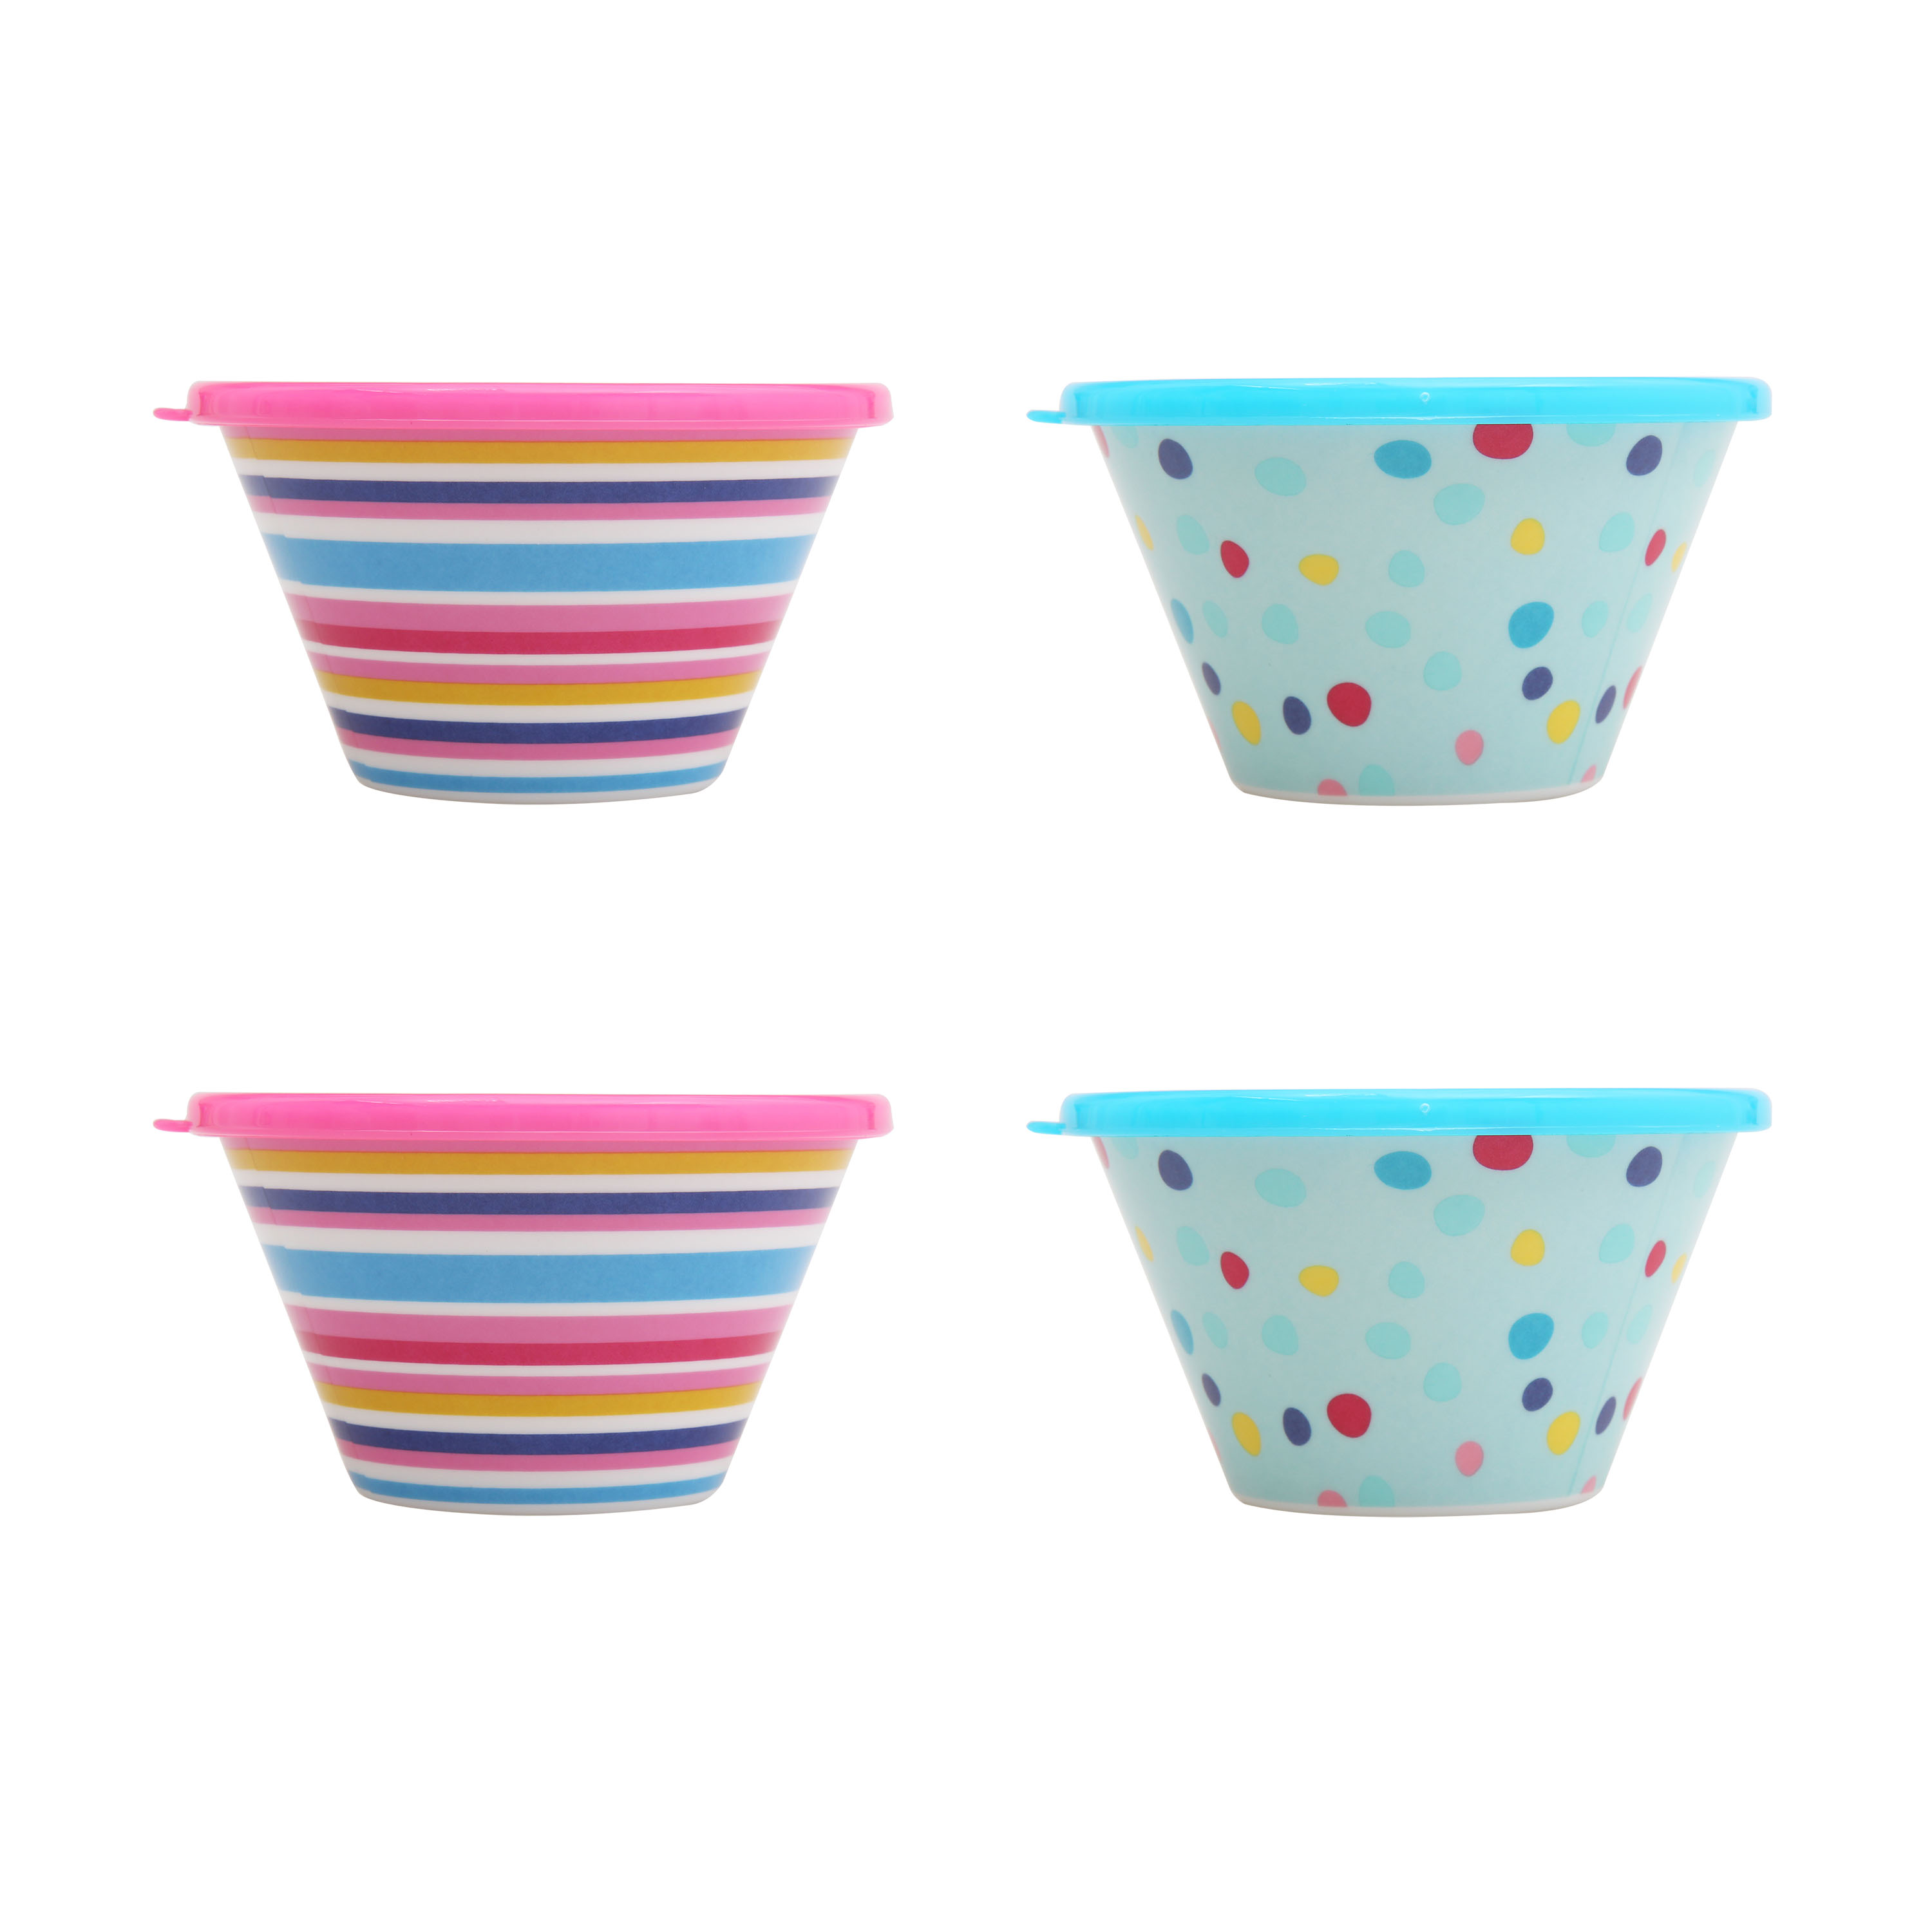 Mainstays Kids 4-Pack Melamine Berry Bowl with Lid, Multiple